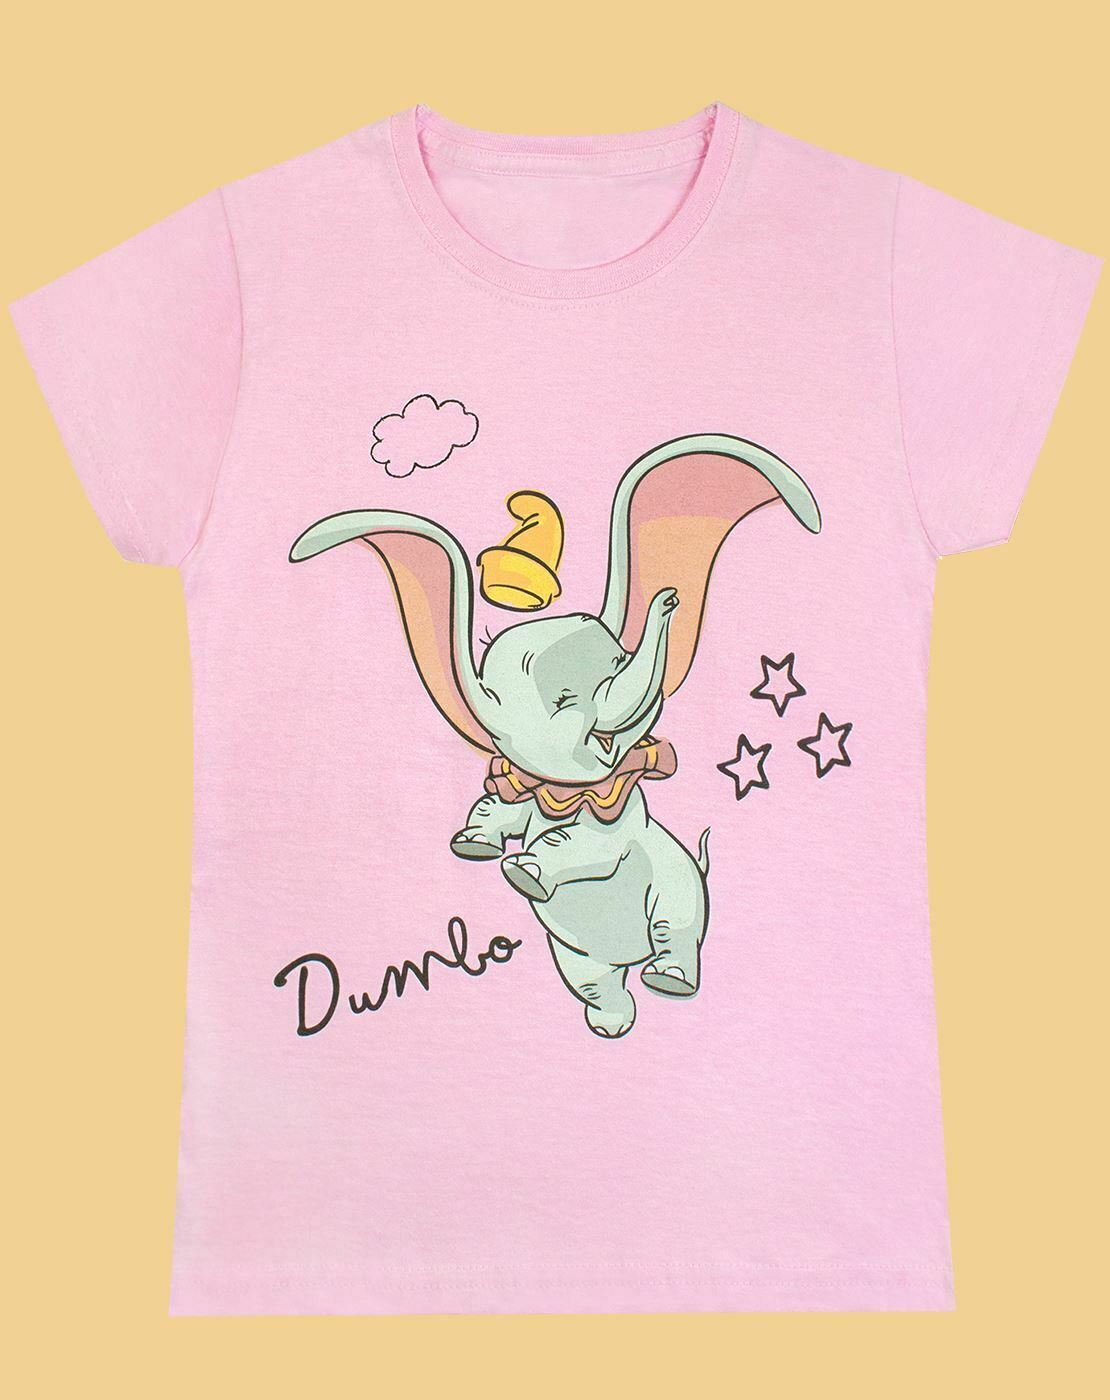 Disney Girls Dumbo Circus Sweatshirt